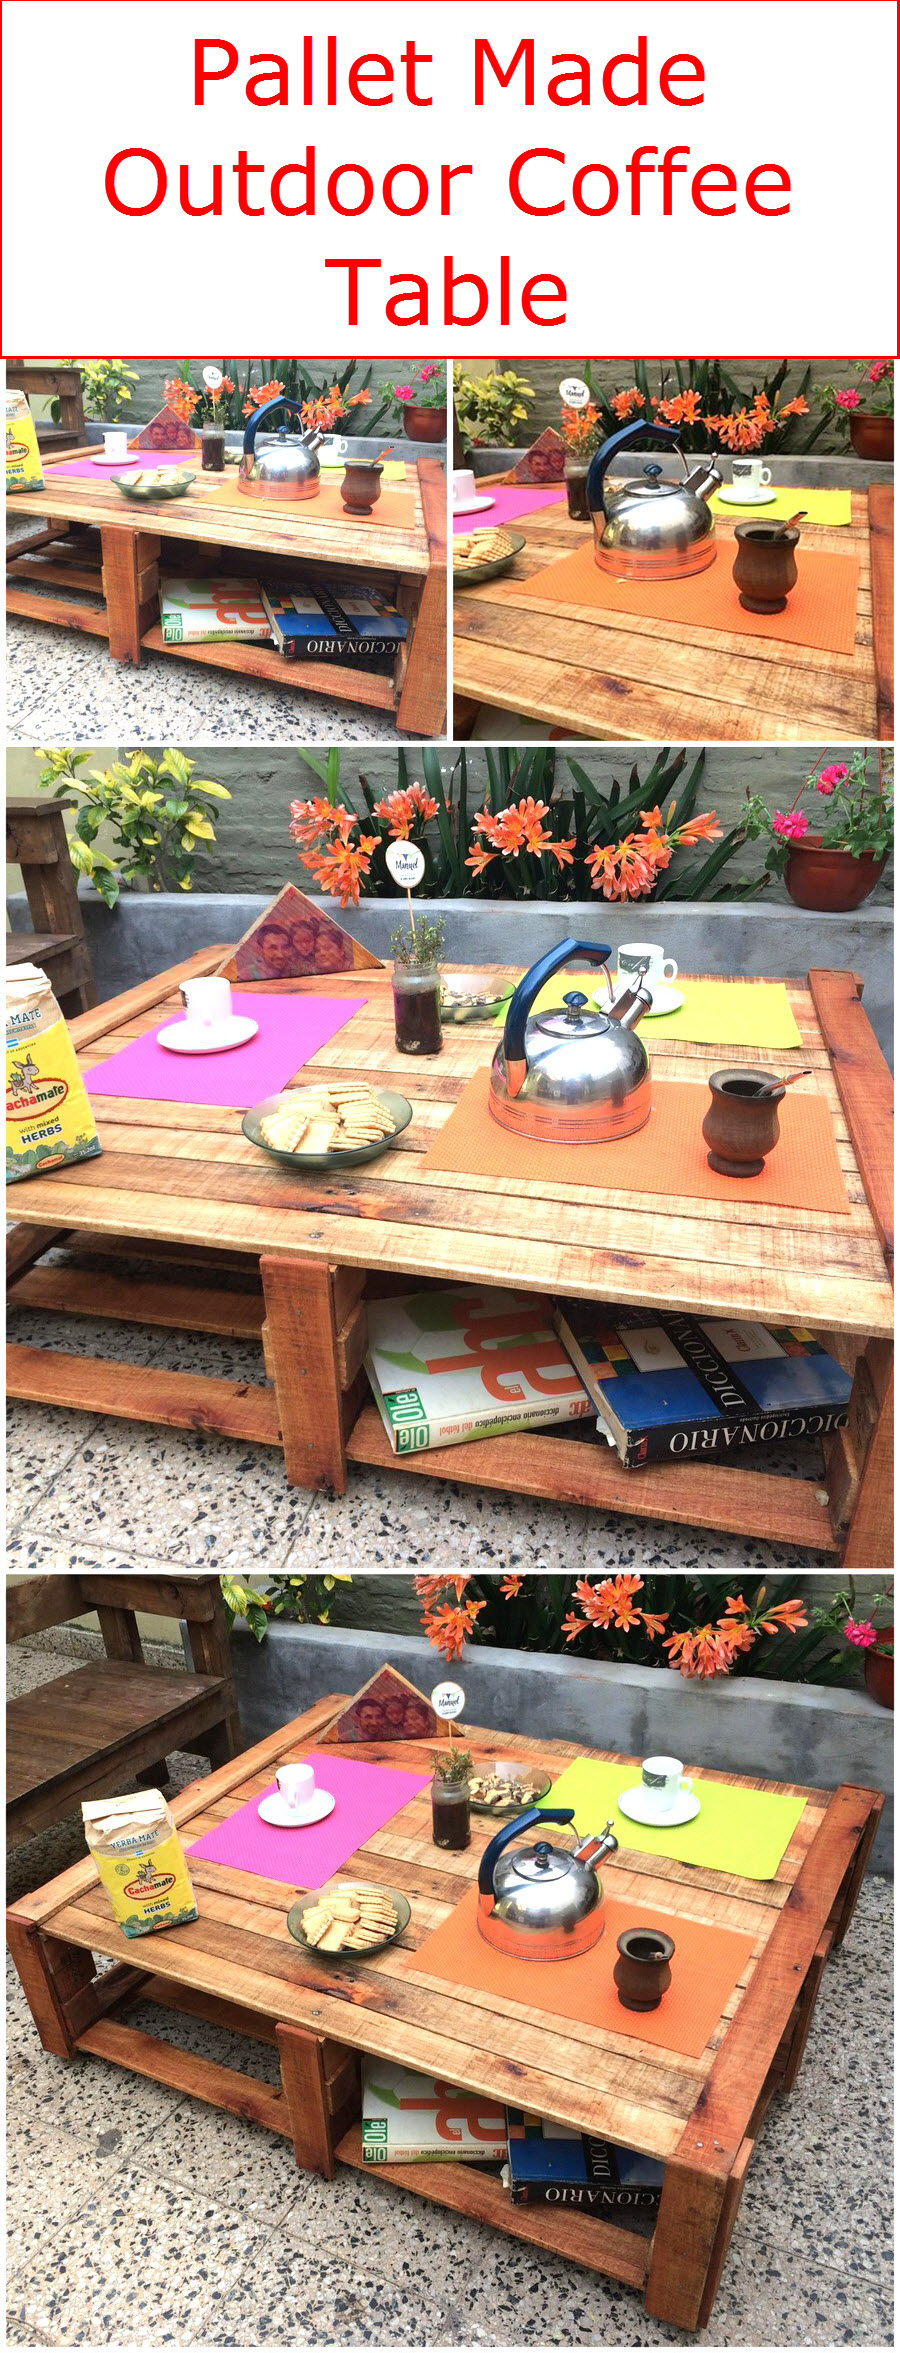 pallet-made-outdoor-coffee-table